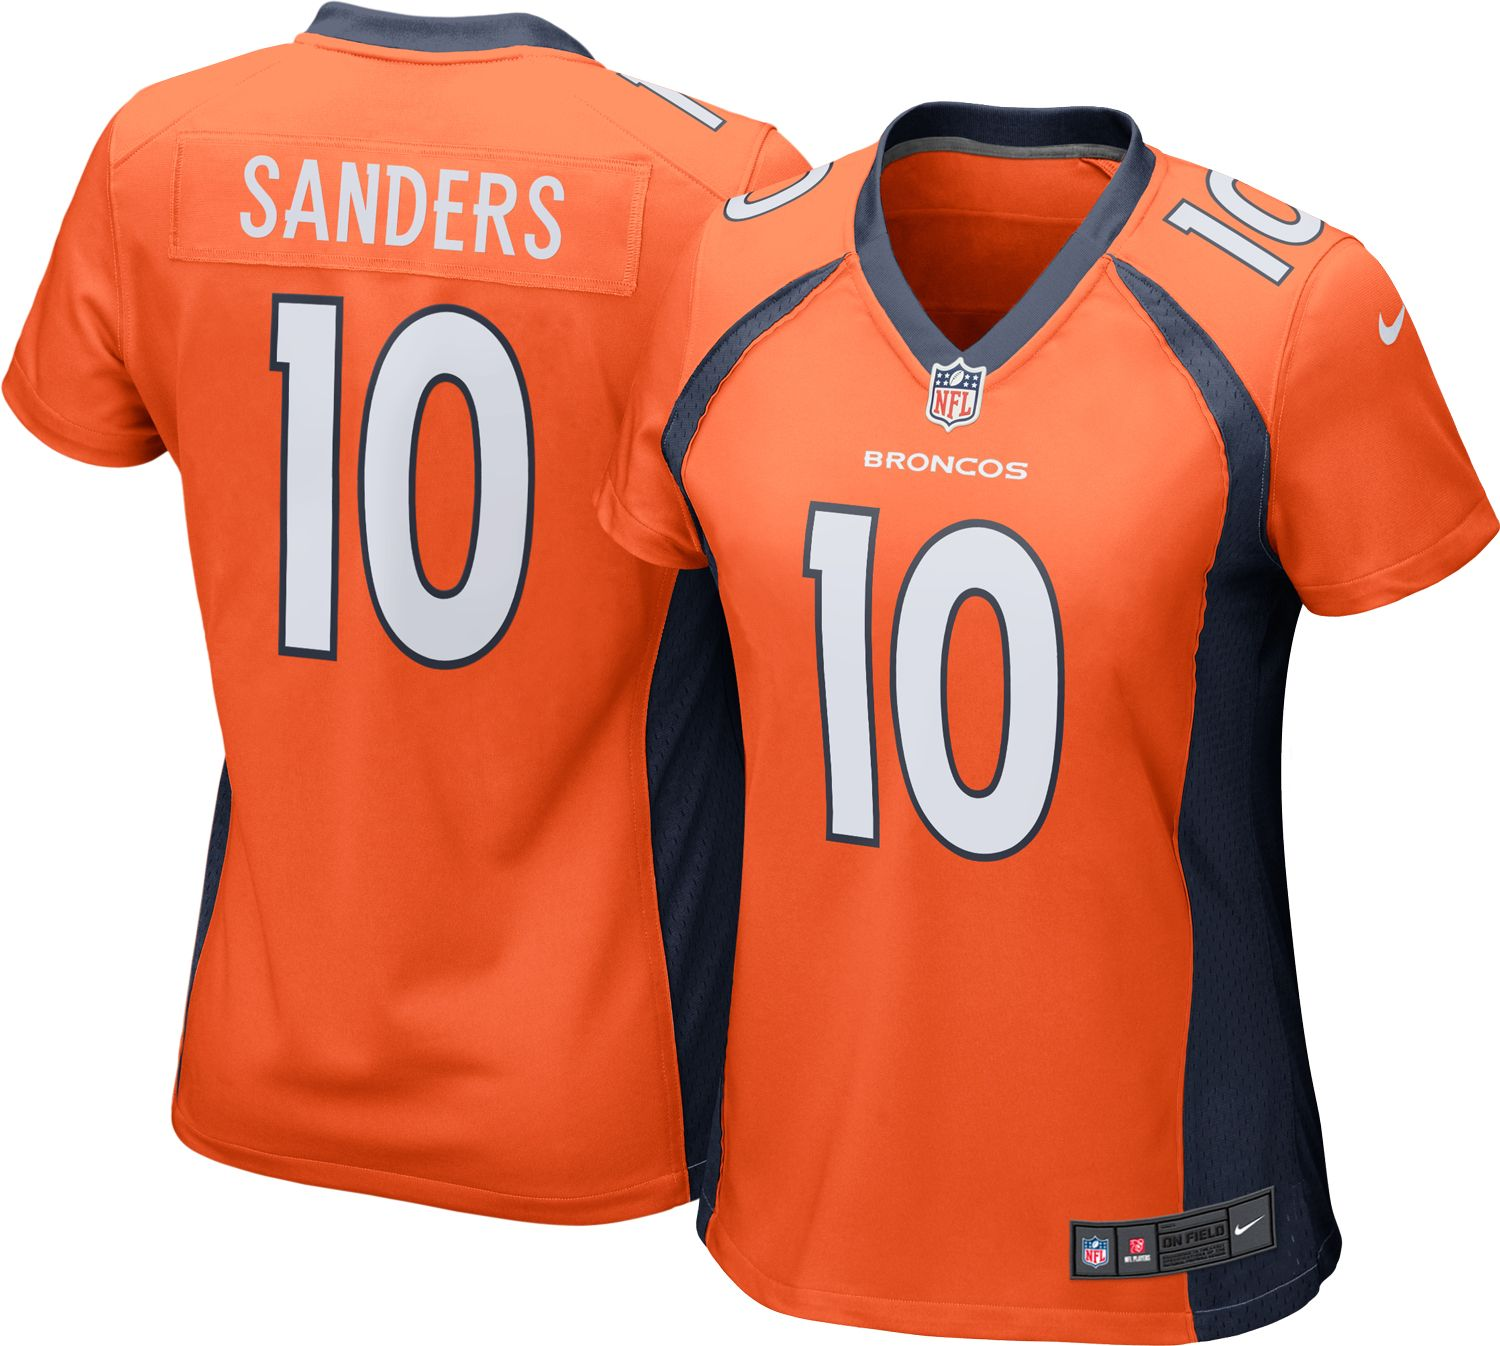 official broncos jersey